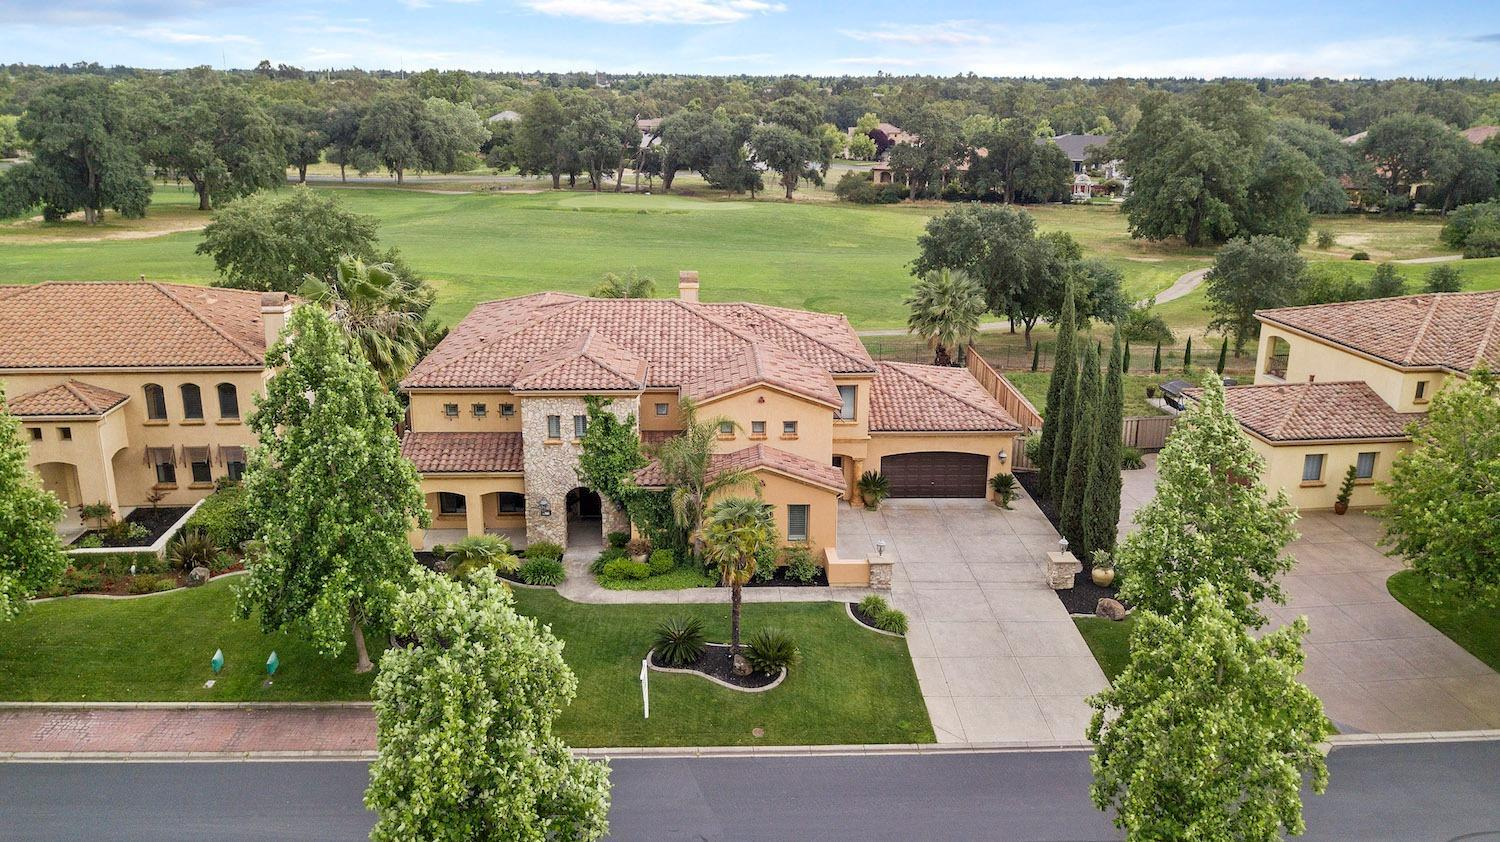 Homes for sale in Morgan Creek